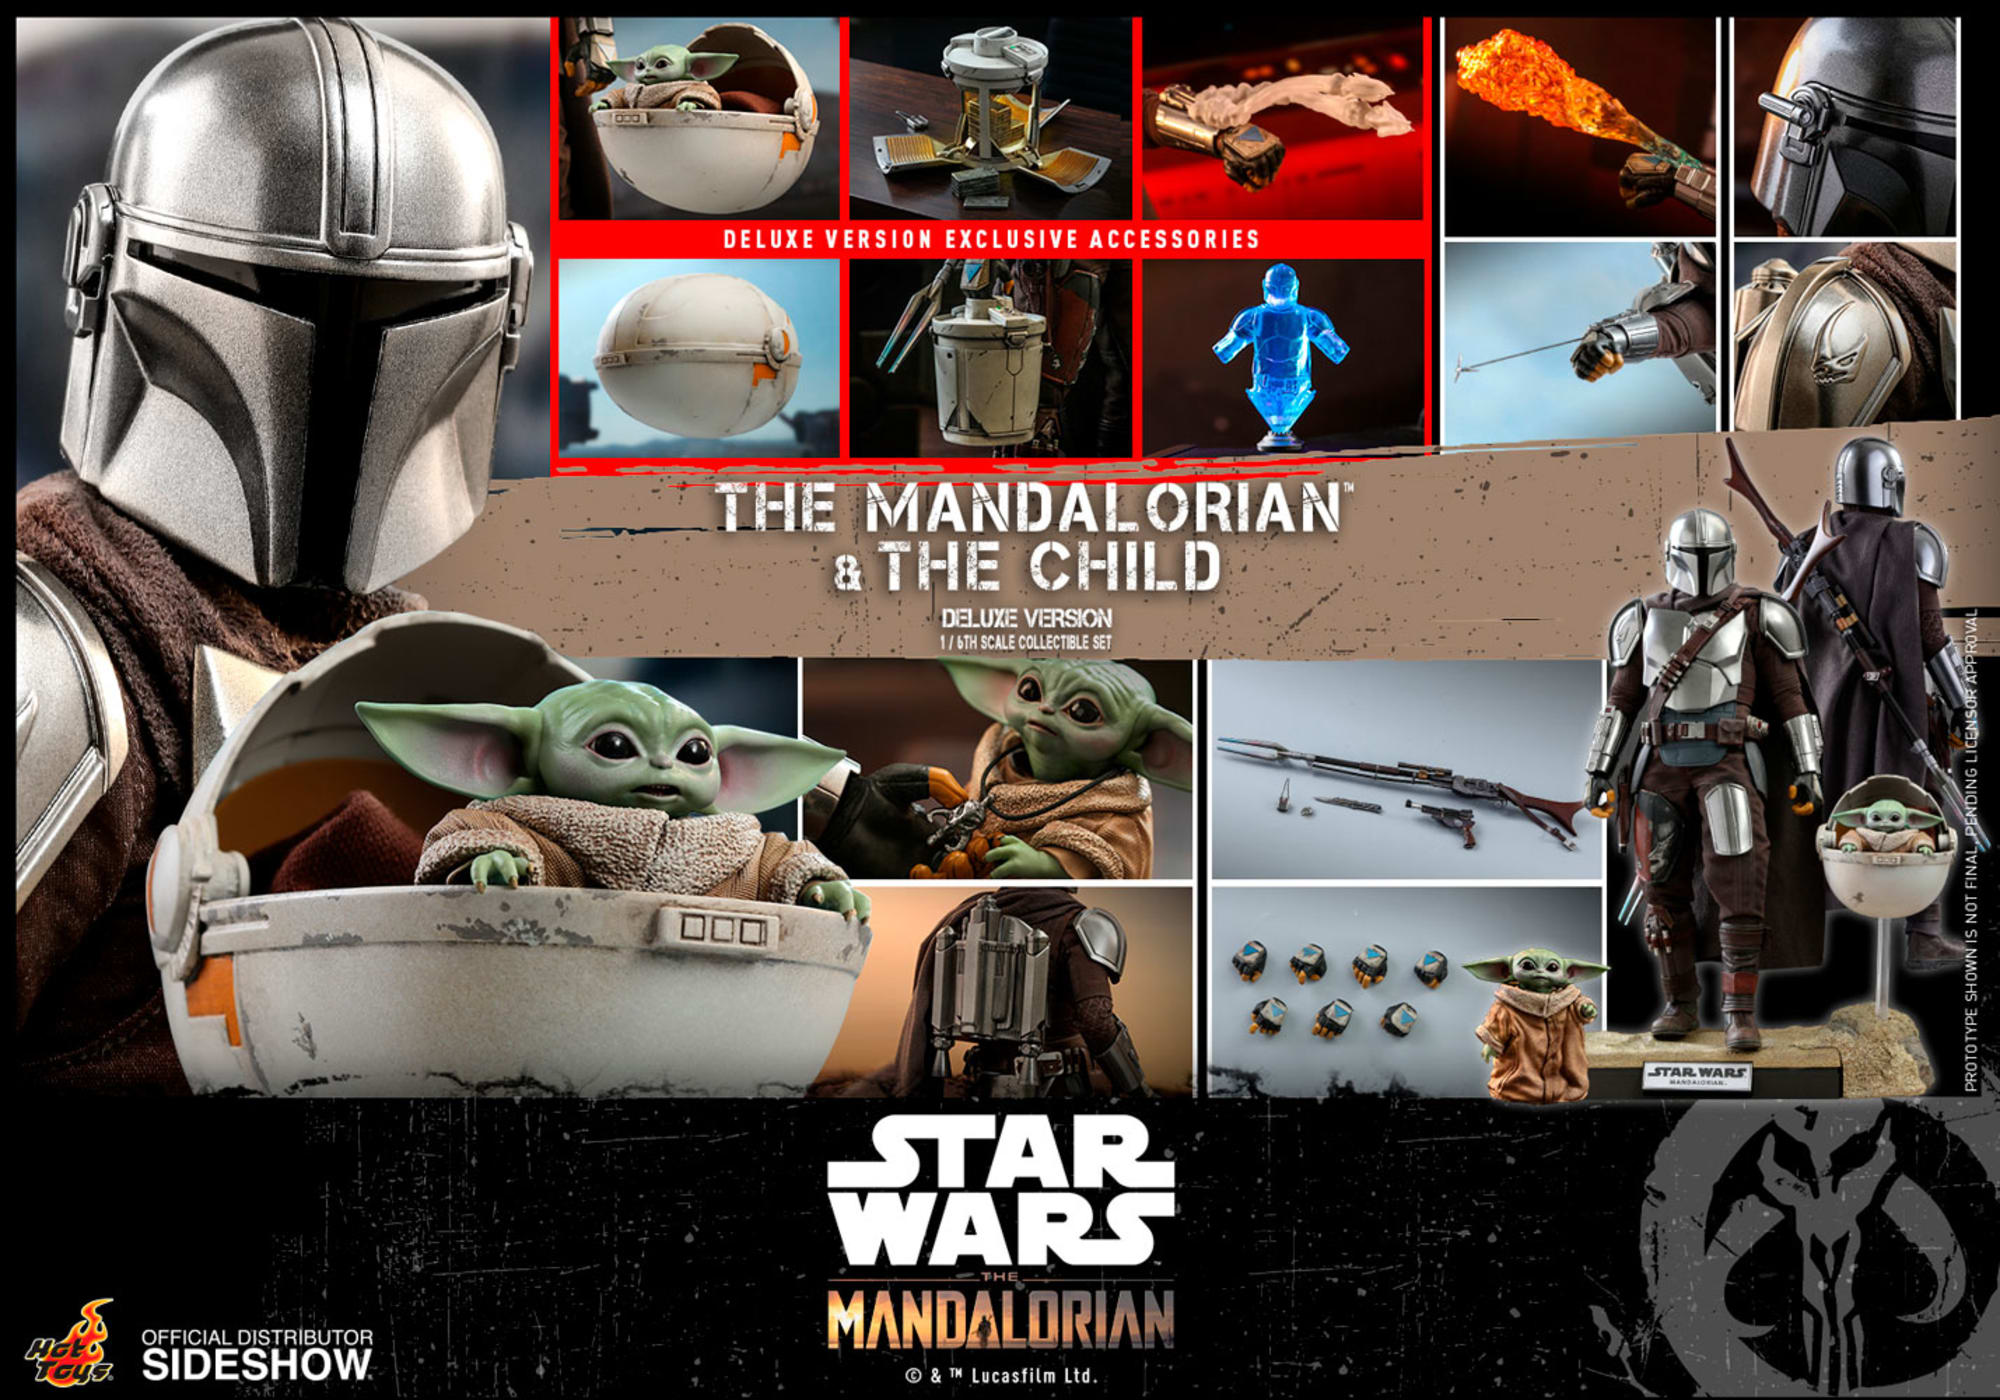 Star Wars Day: Check out the latest Hot Toys, Black Series releases